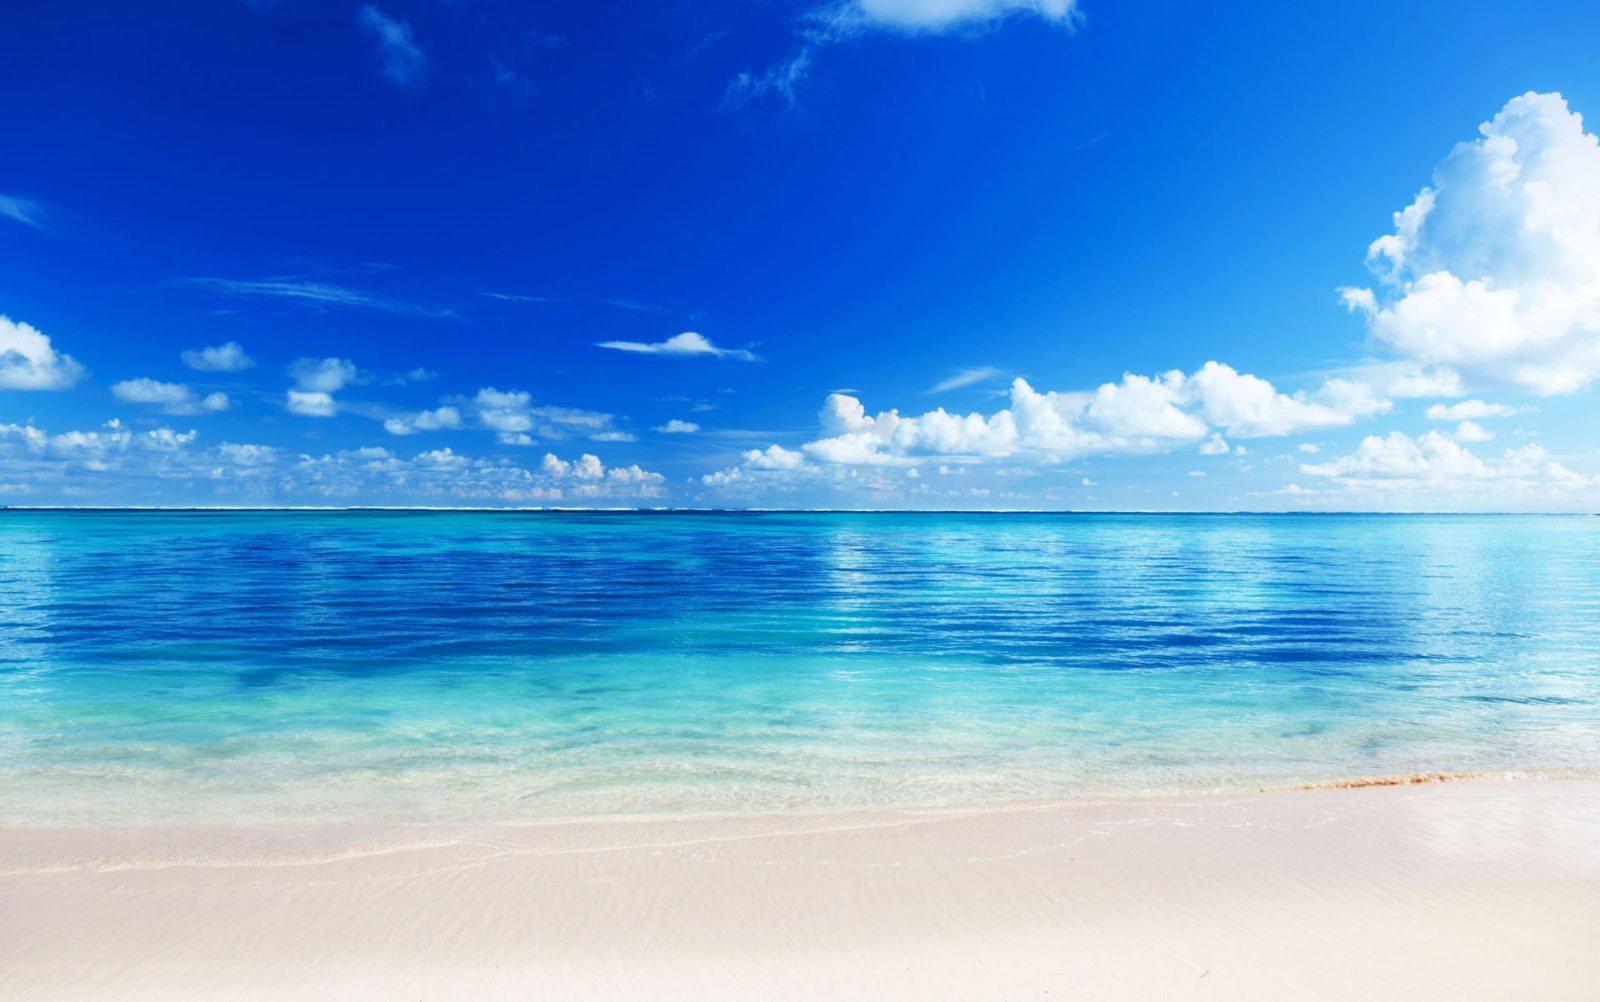 129 Beach Wallpaper Examples To Put On Your Desktop Background 1600x1002